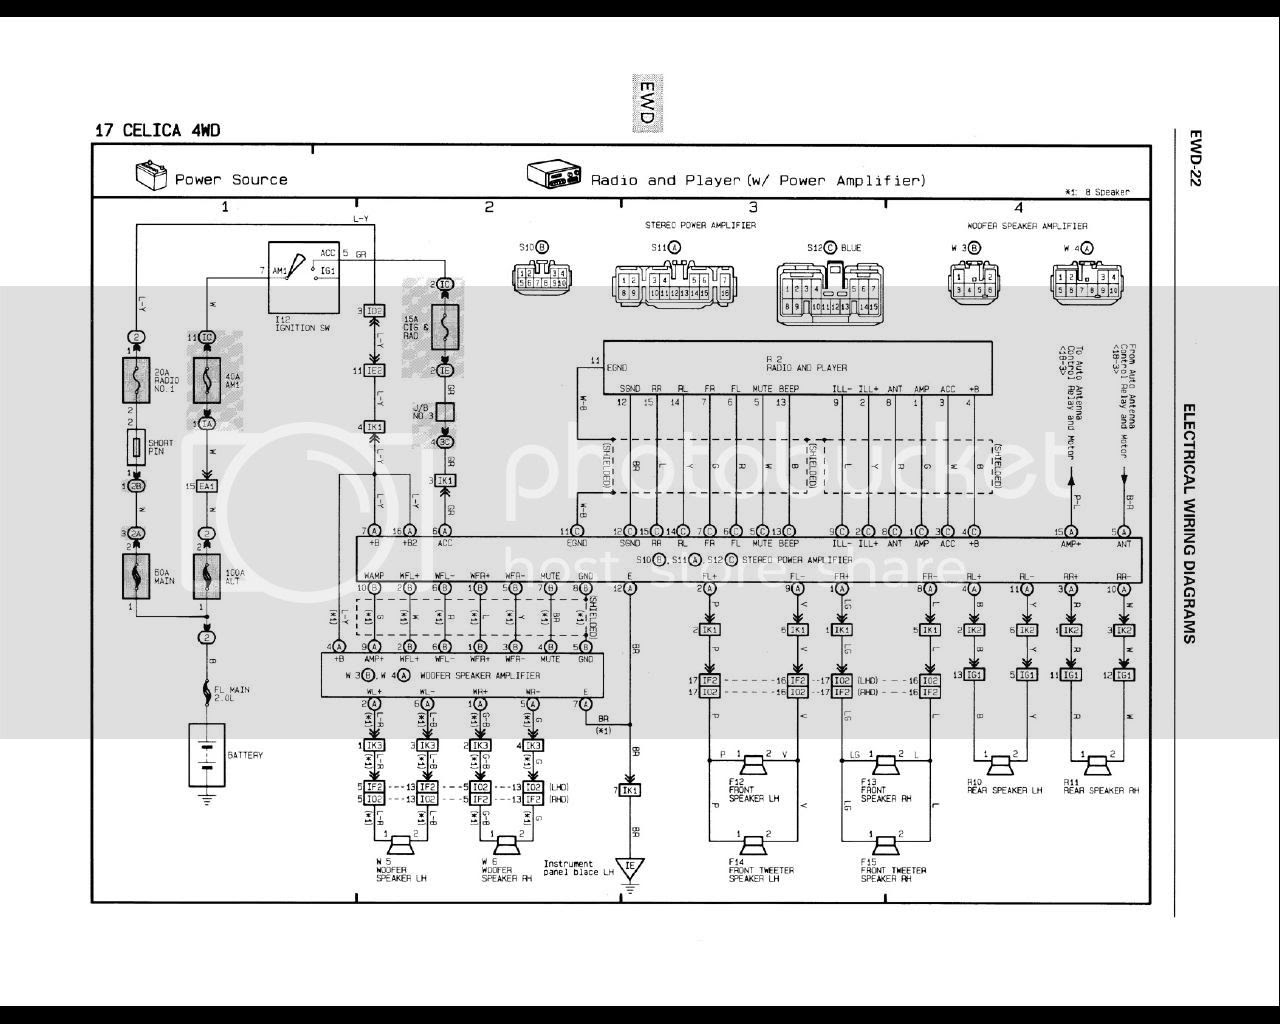 Amp Premium Sound Wiring Diagram 1998 Ford Contour